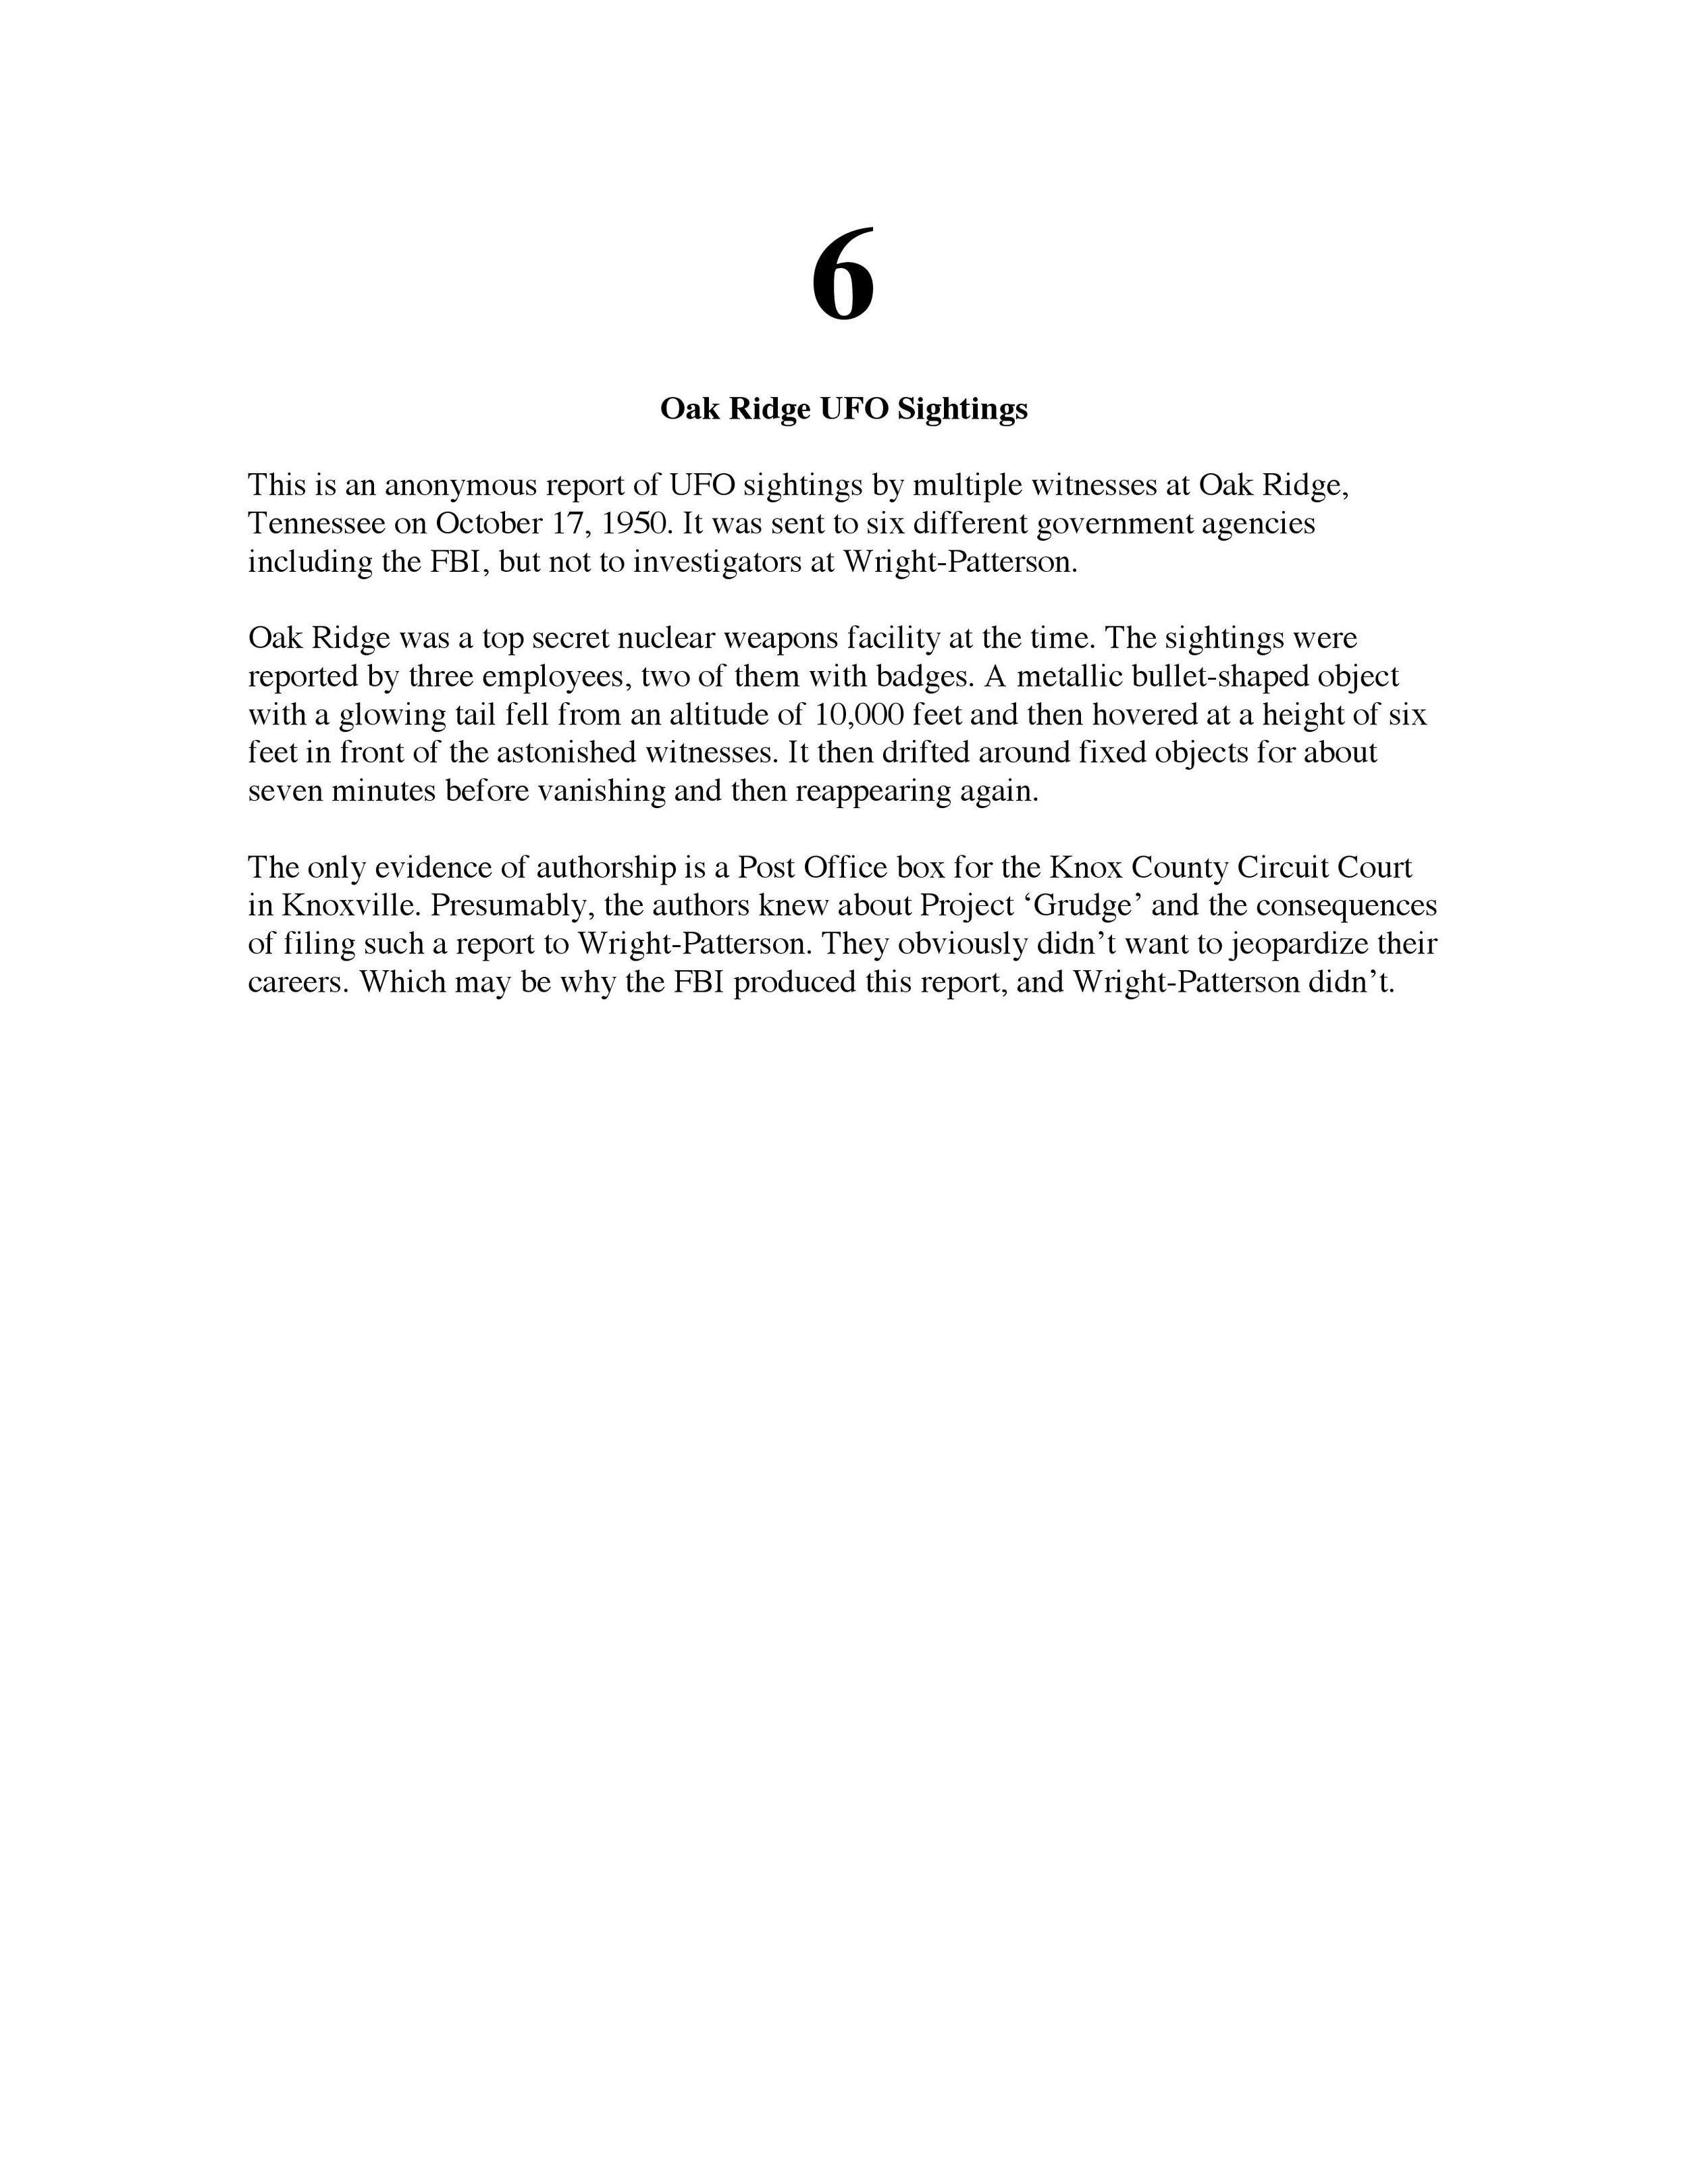 6-A-page-001.jpg